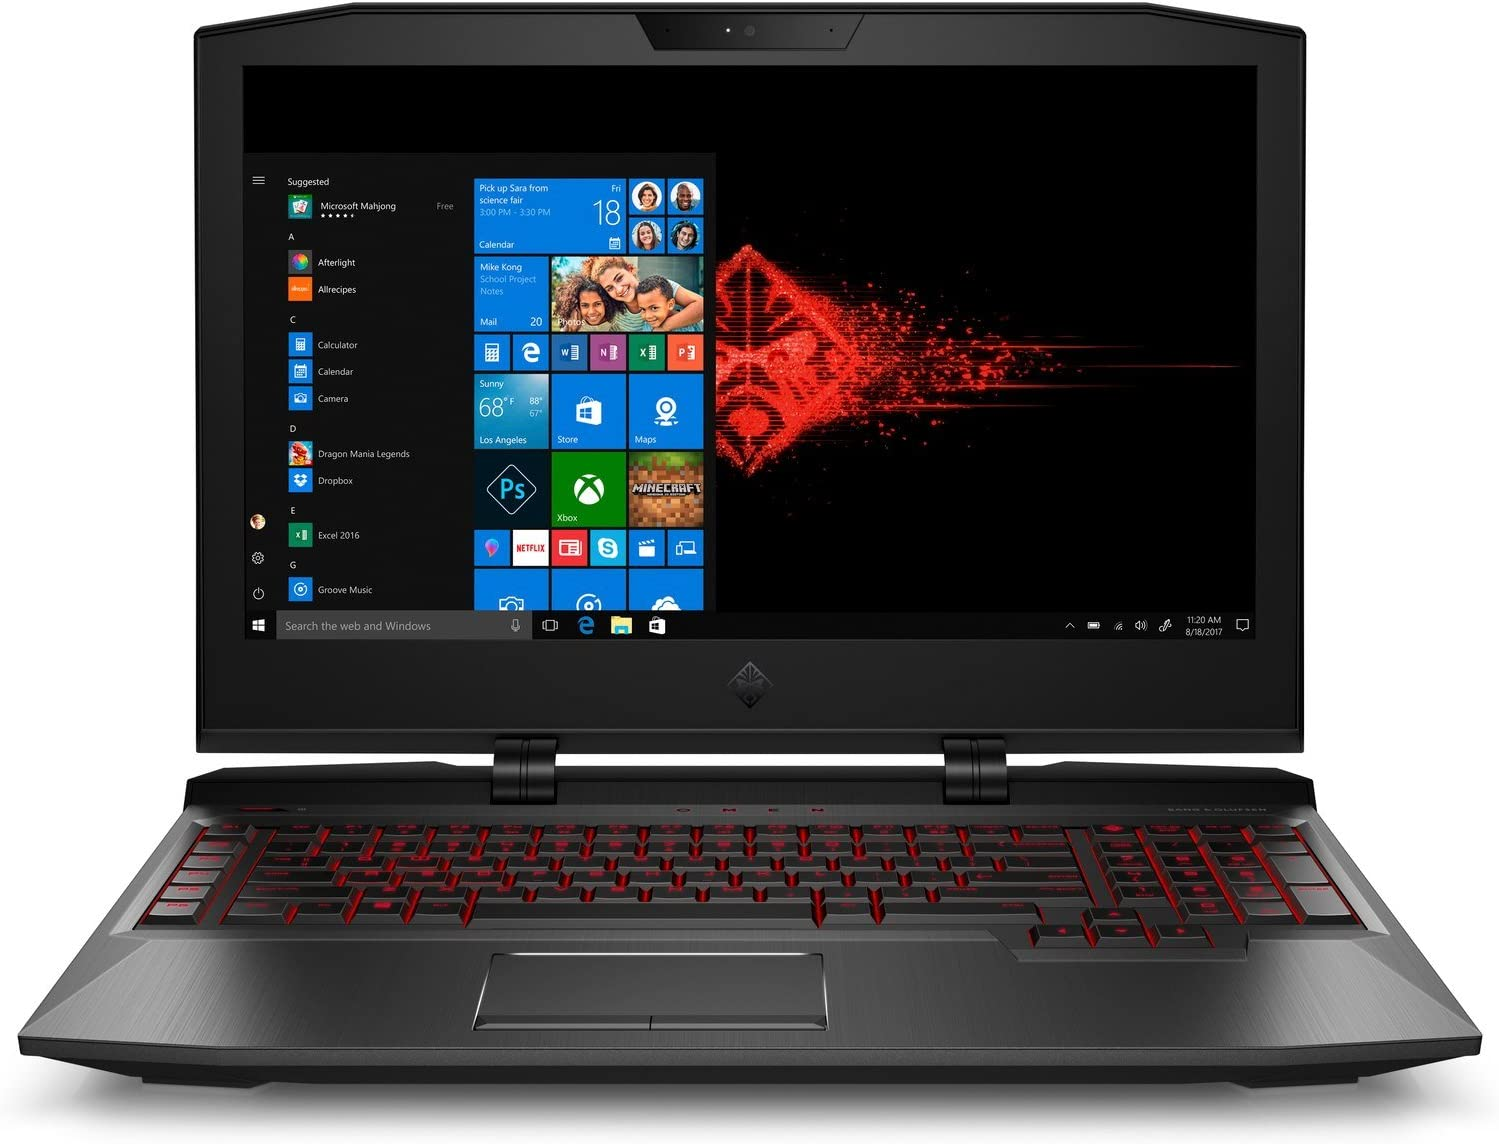 Amazon Com Hp 5275669 Omen X 17 Ap092ms Gaming Laptop Intel I7 7820hk Ci7 2 9 Ghz 1 Tb Nvidia Geforcegtx1080 8gb Windows 10 Home 64 Bit Black 17 3 Fhd Refurbished Computers Accessories